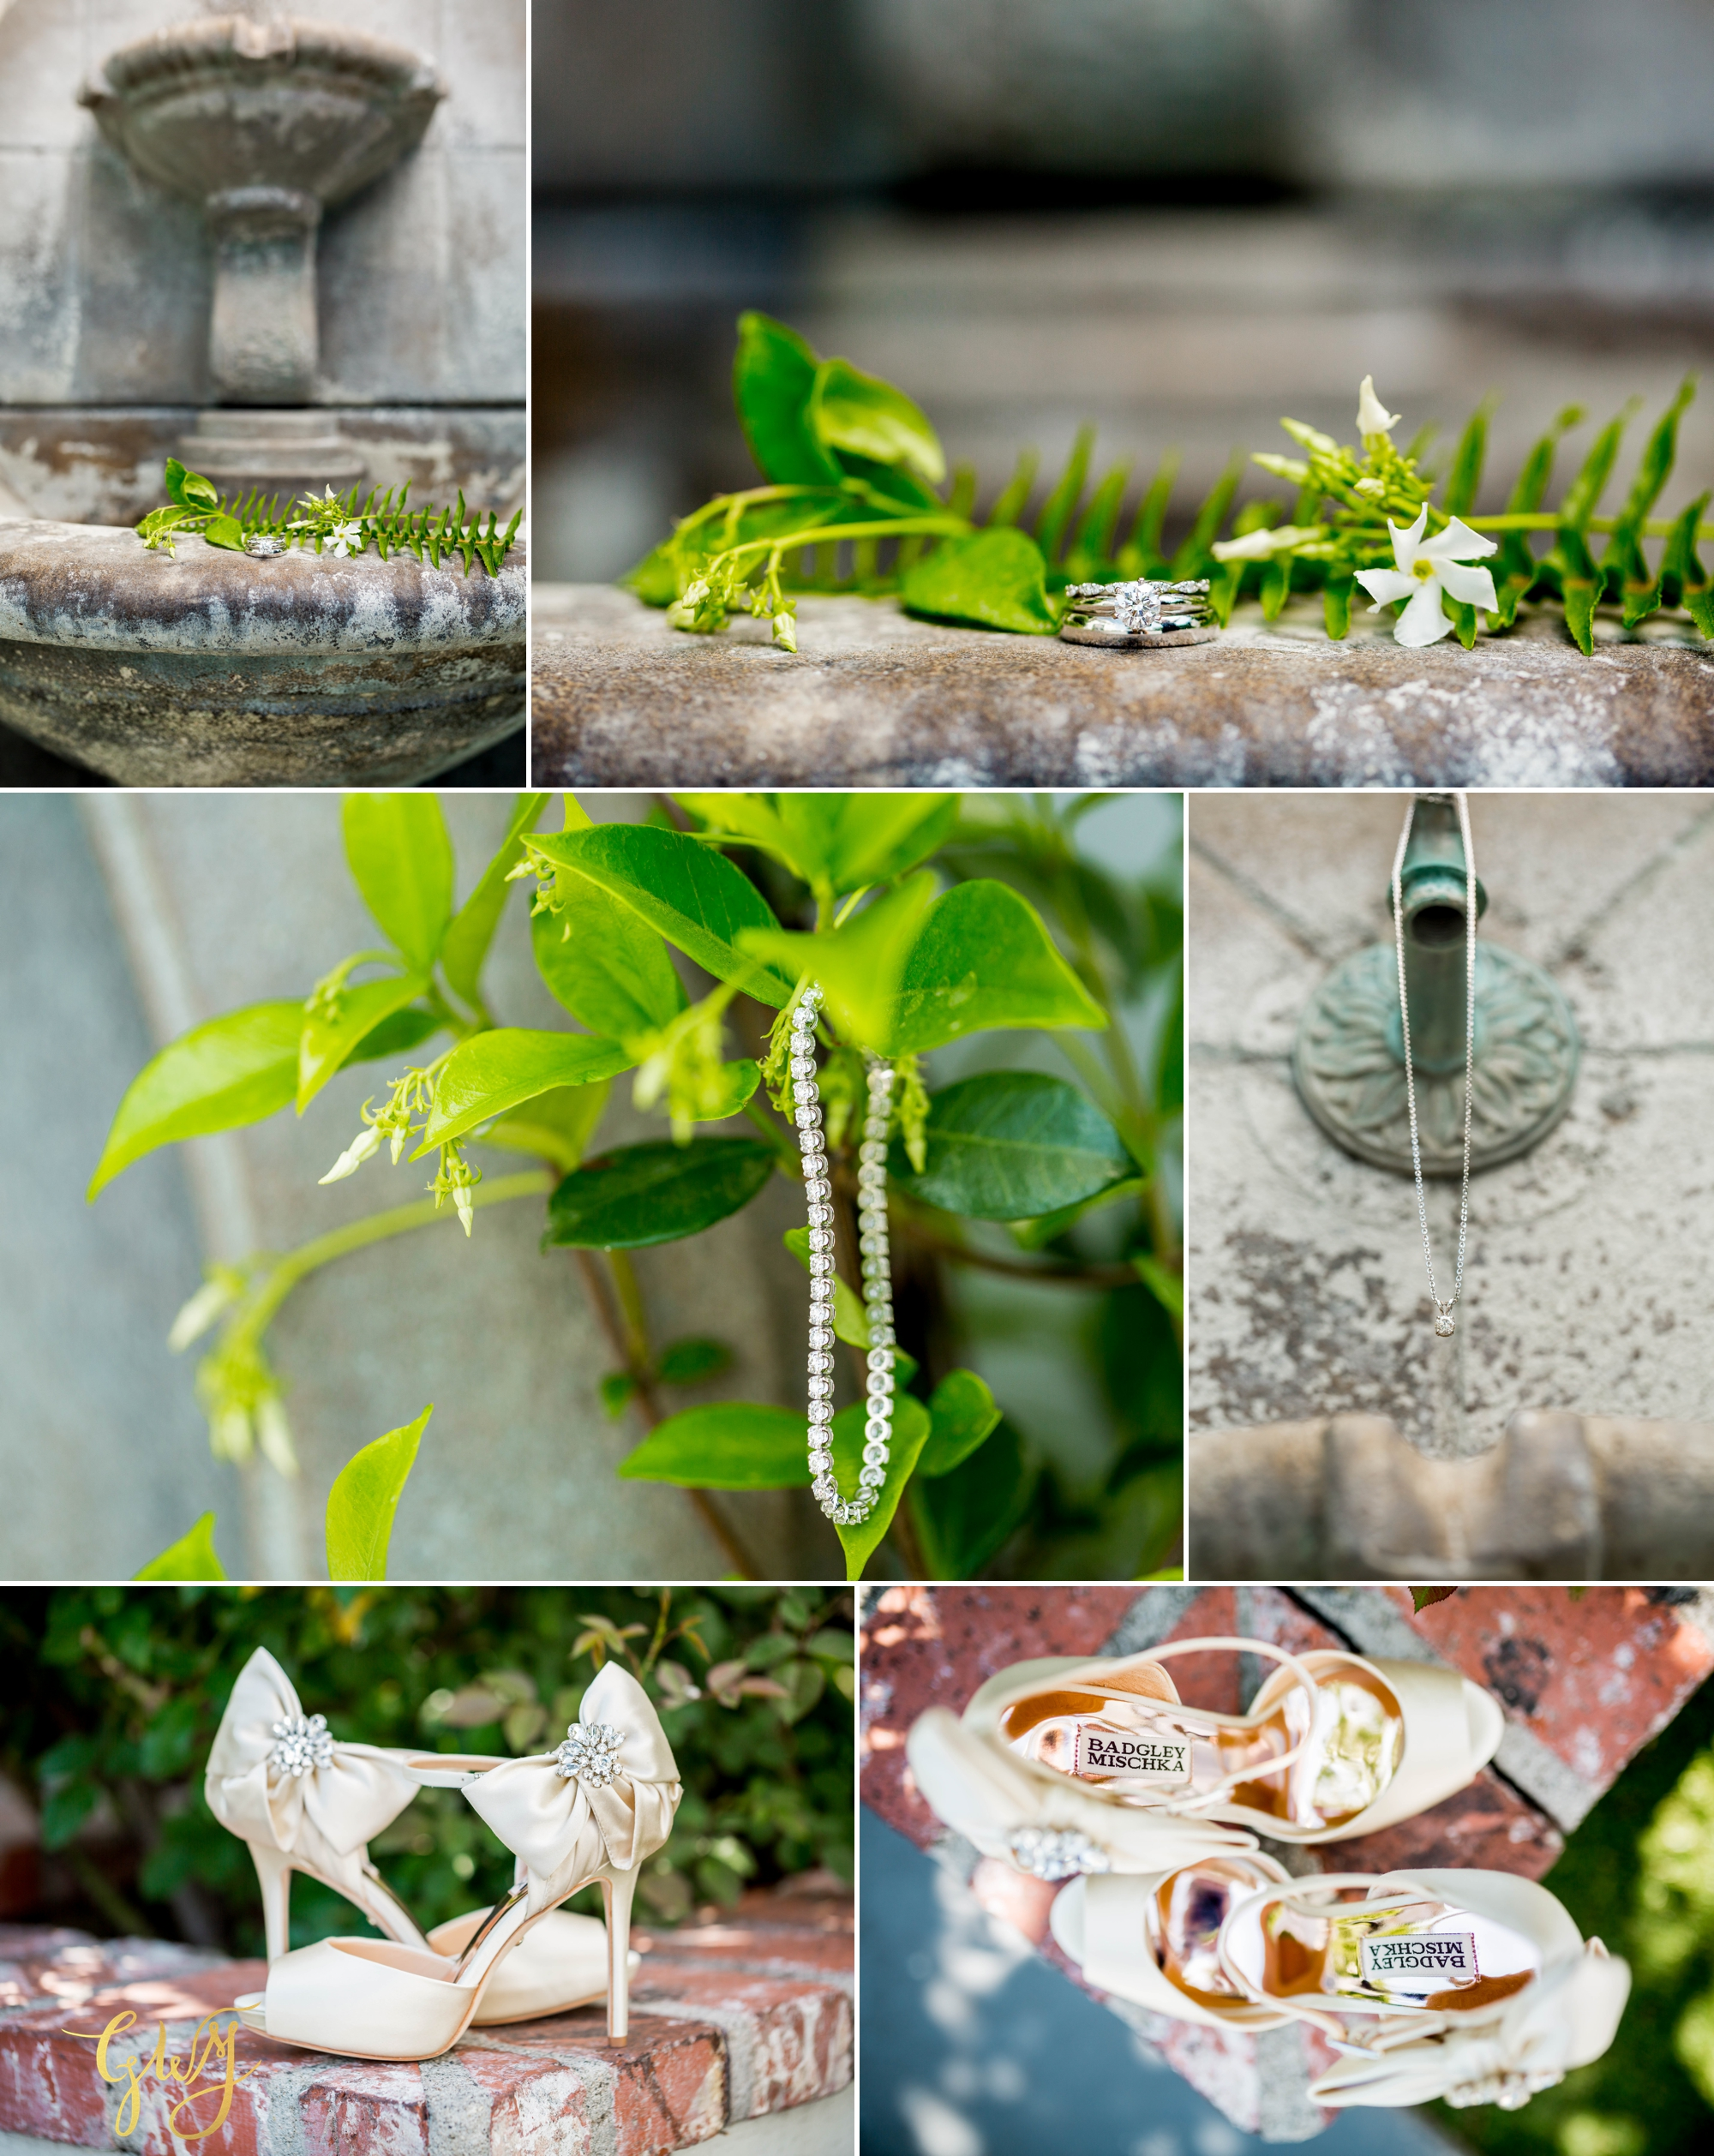 Andy + Caselyn's White House Event Center Orange County Spring Wedding by Glass Woods Media 1.jpg